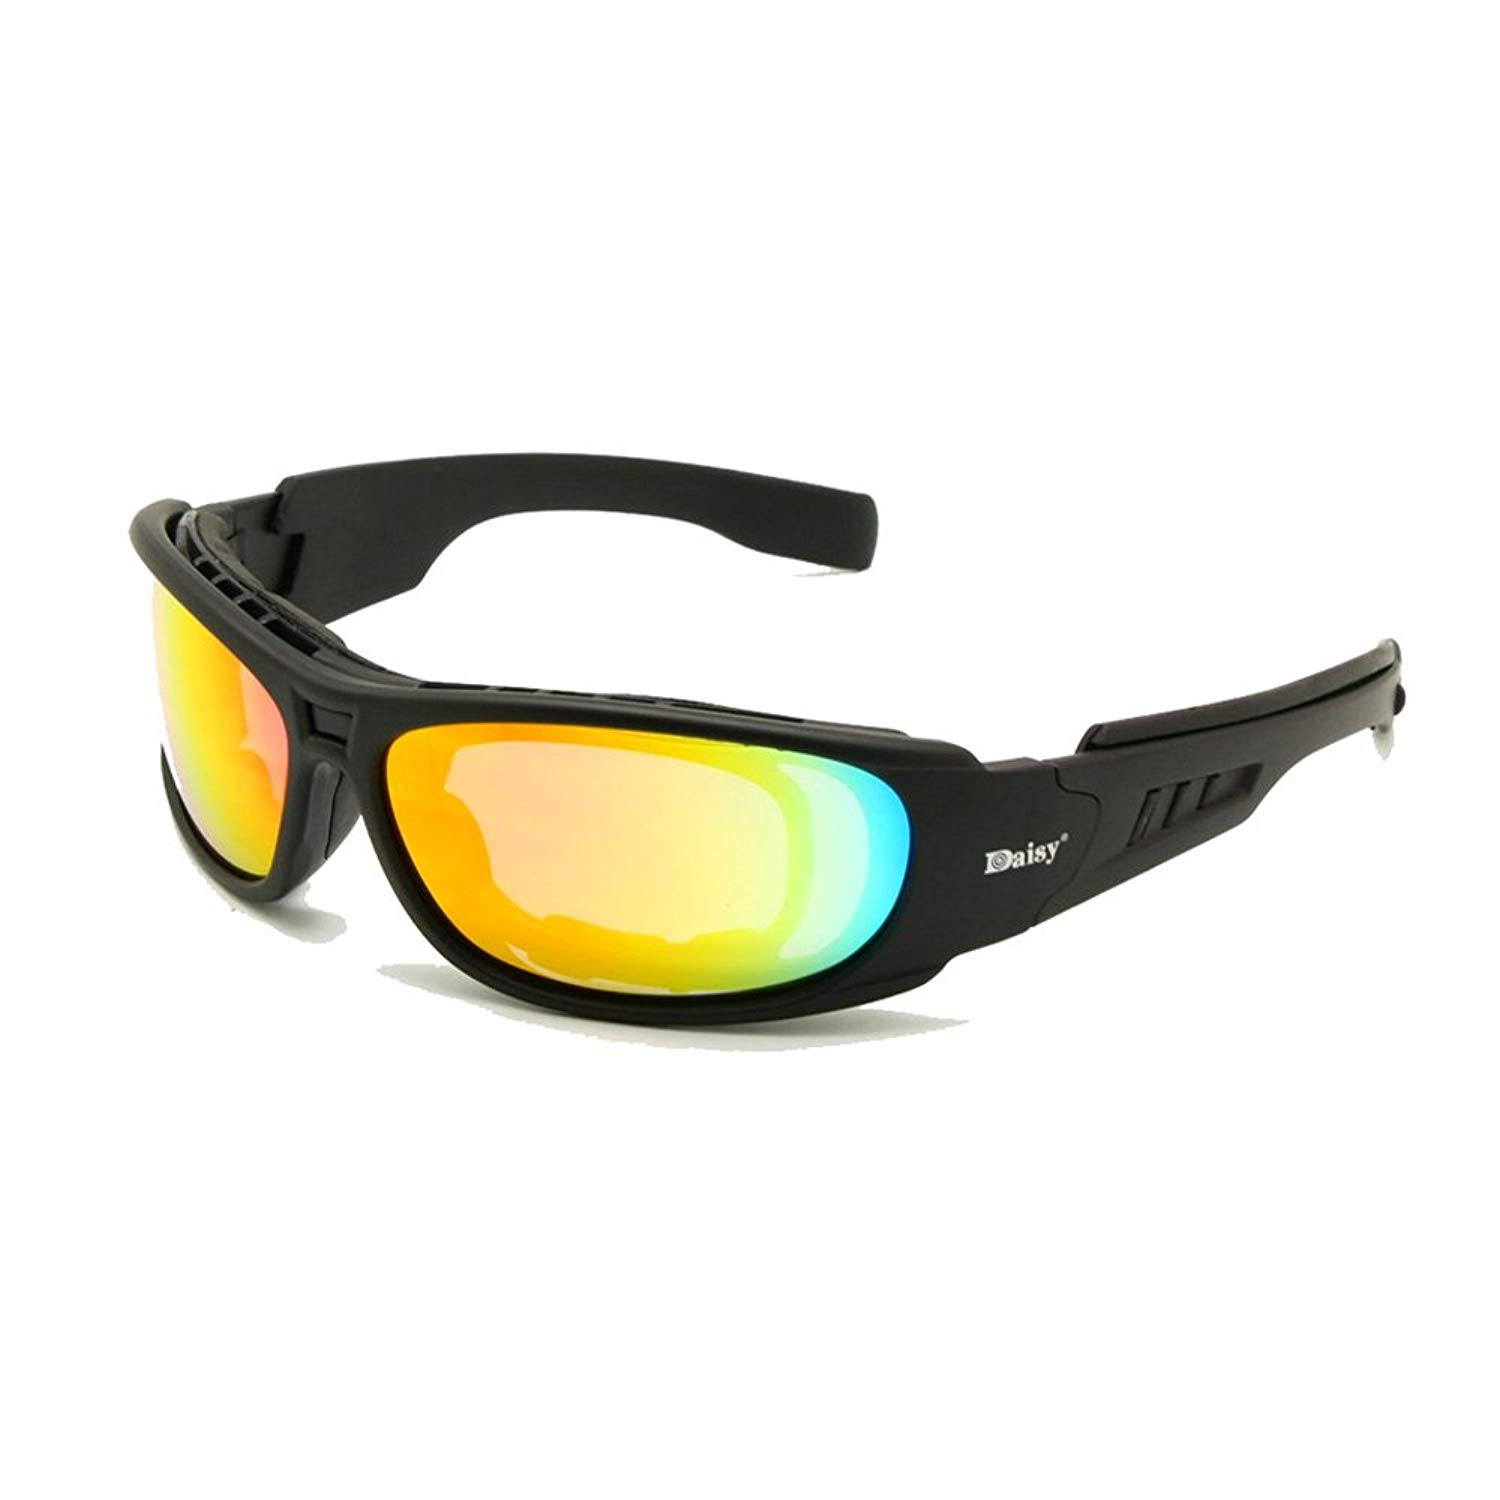 85d8ba9ed0 Get Quotations · Daisy C6 Polarized Ballstic Army Sunglasses Rx Insert  Military Tactical Goggles